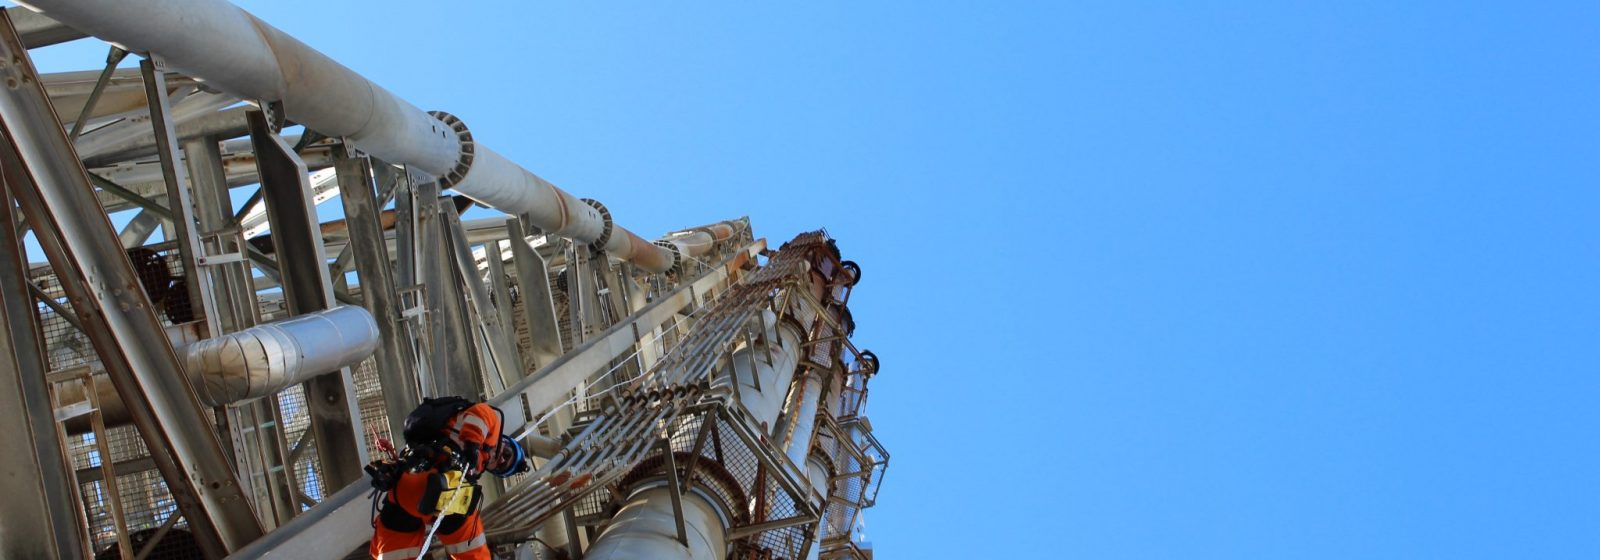 Refinery Flare Structure Maintenance and Repairs - Header Image